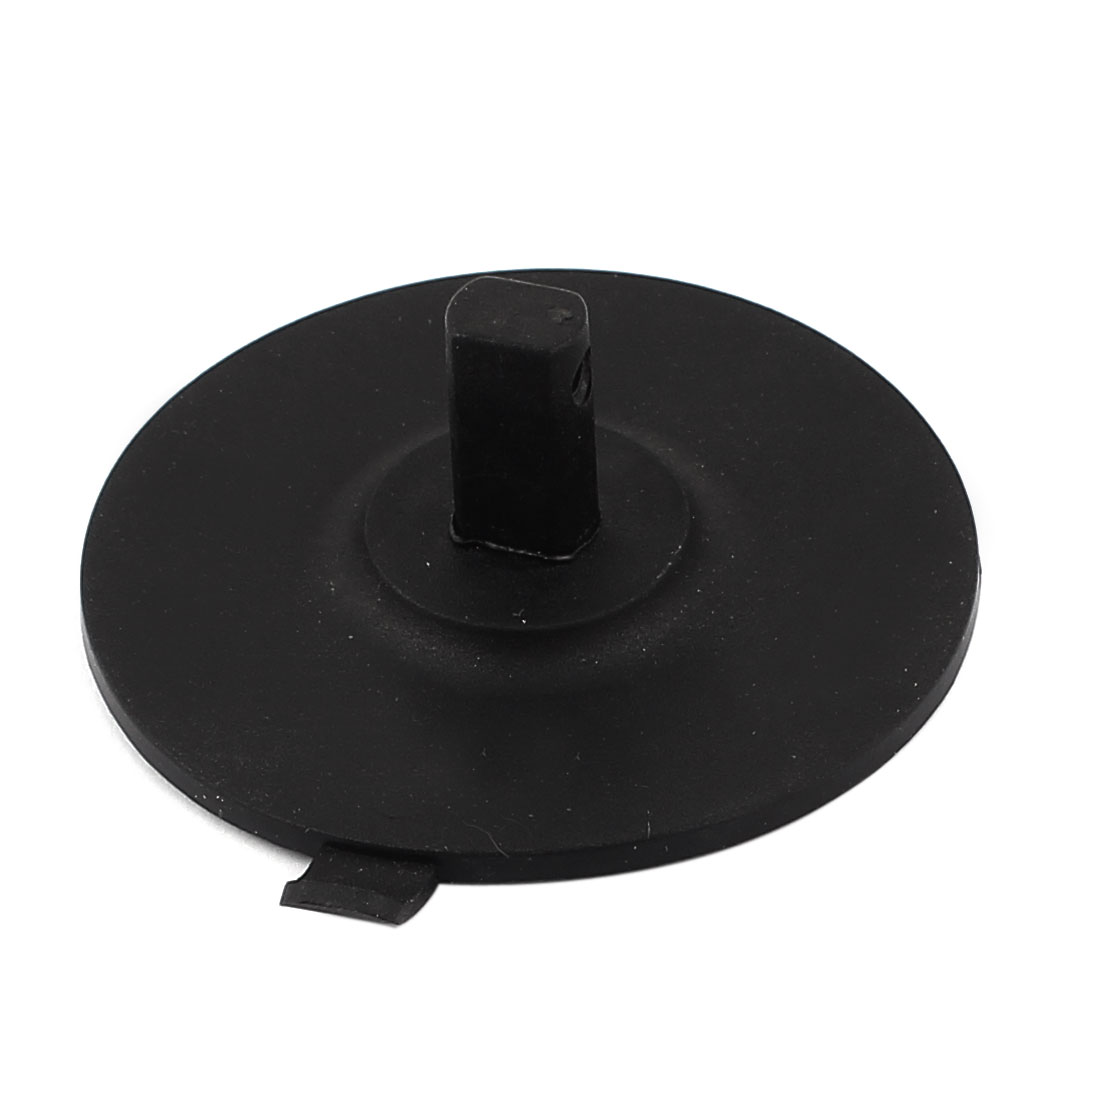 "2.8"" Diameter Black Rubber Pad Glass Circle Cutter Suction Cup"